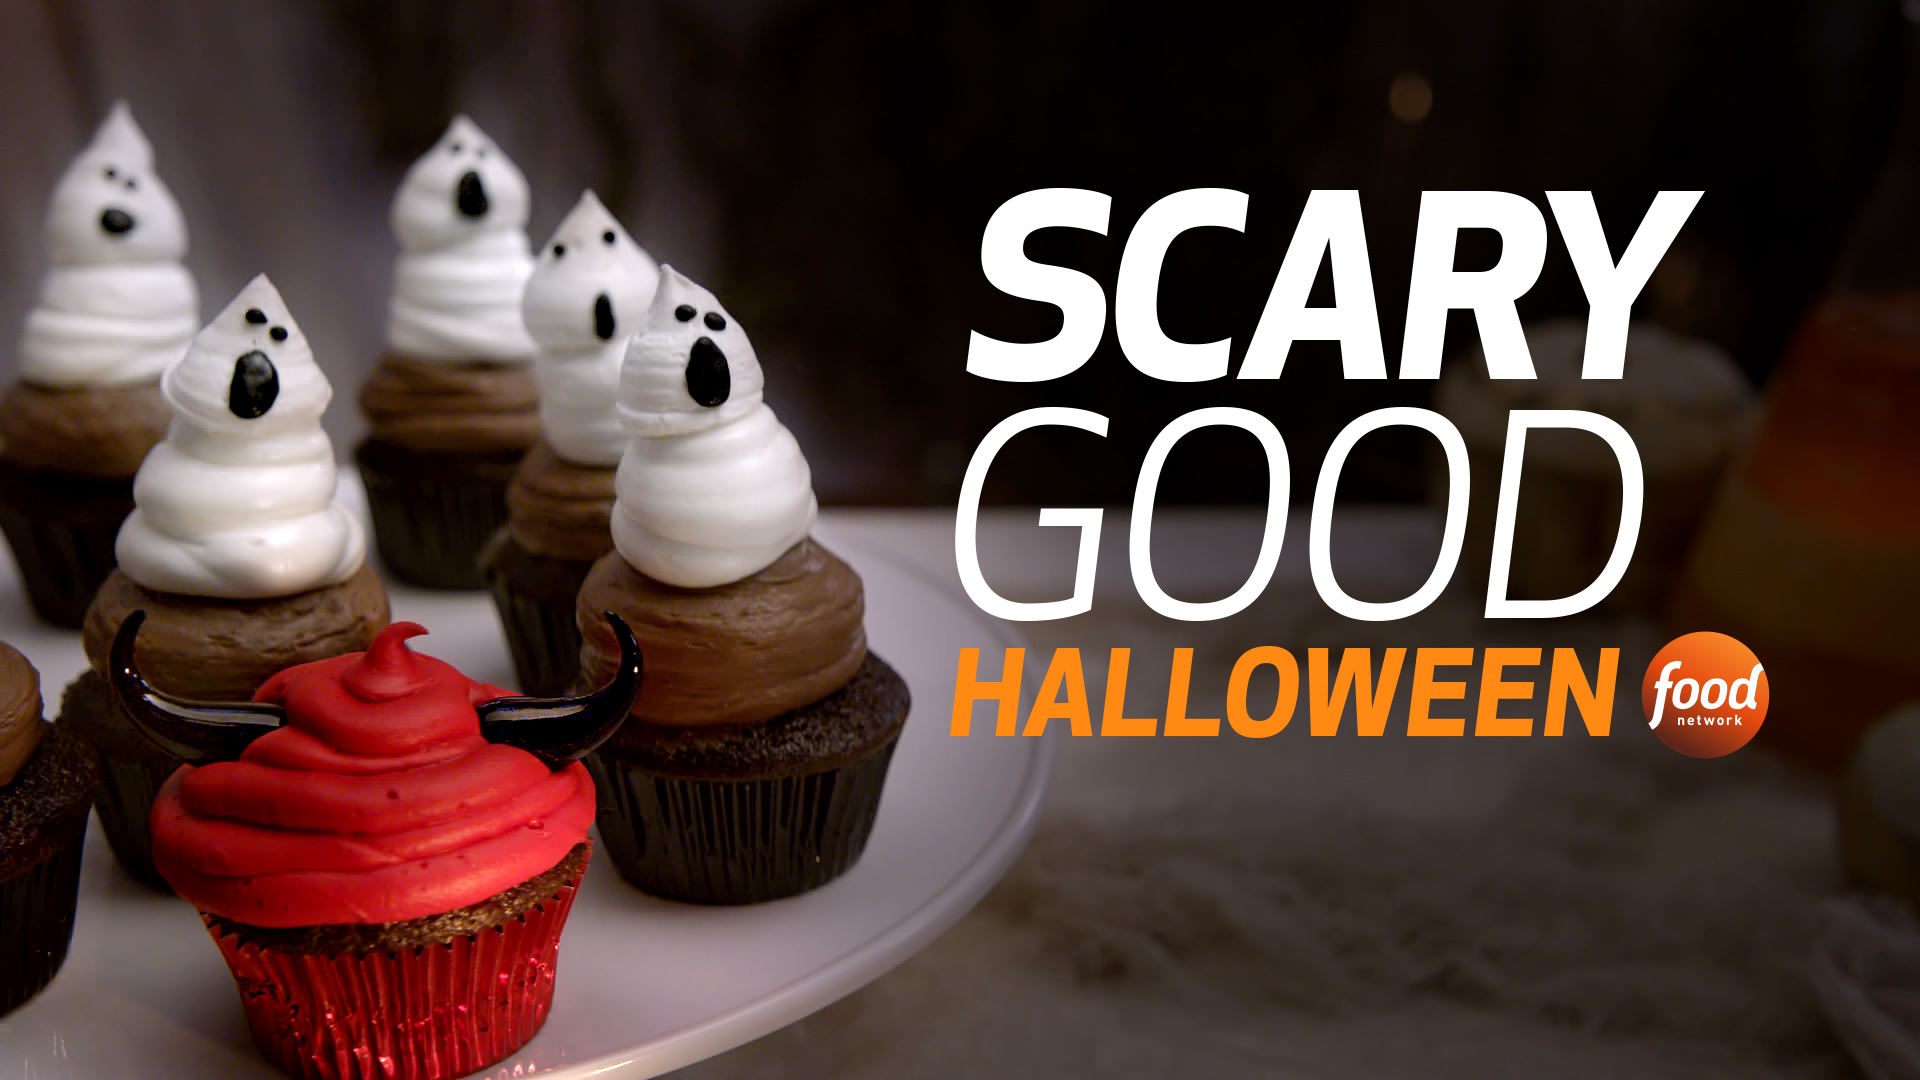 Food Network Halloween Campaign